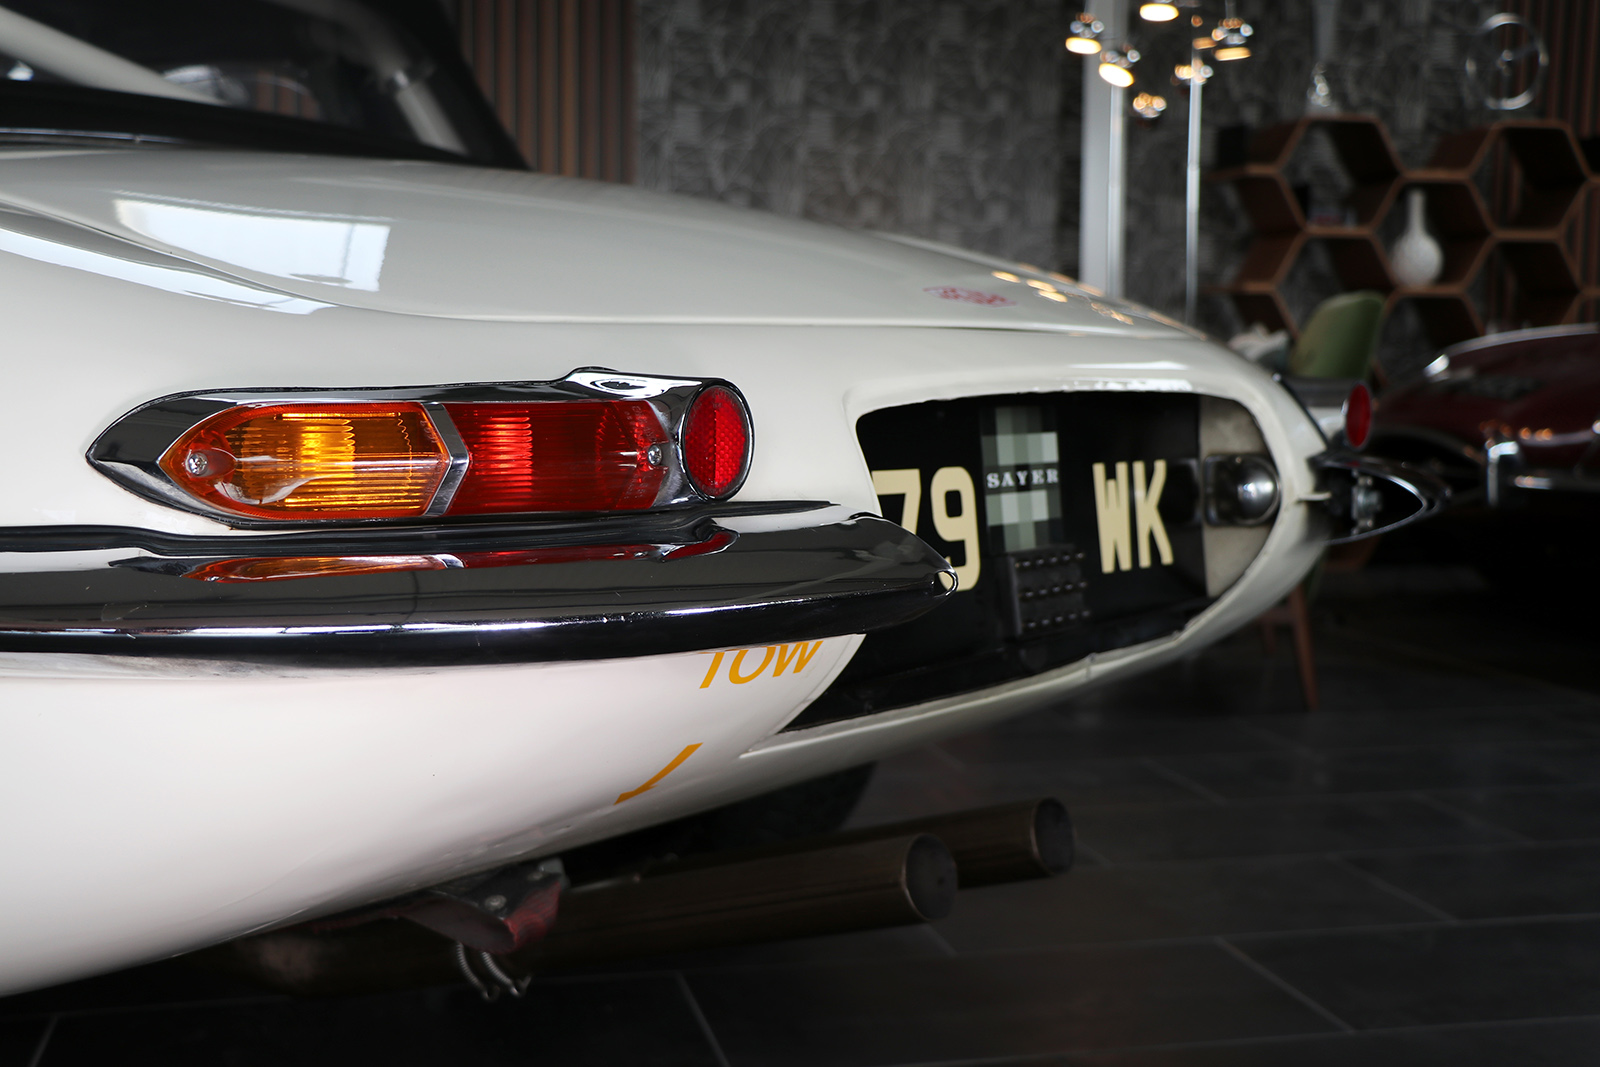 1961-Jaguar-E-Type-Racer-Sayer-Selection-8-web.jpg